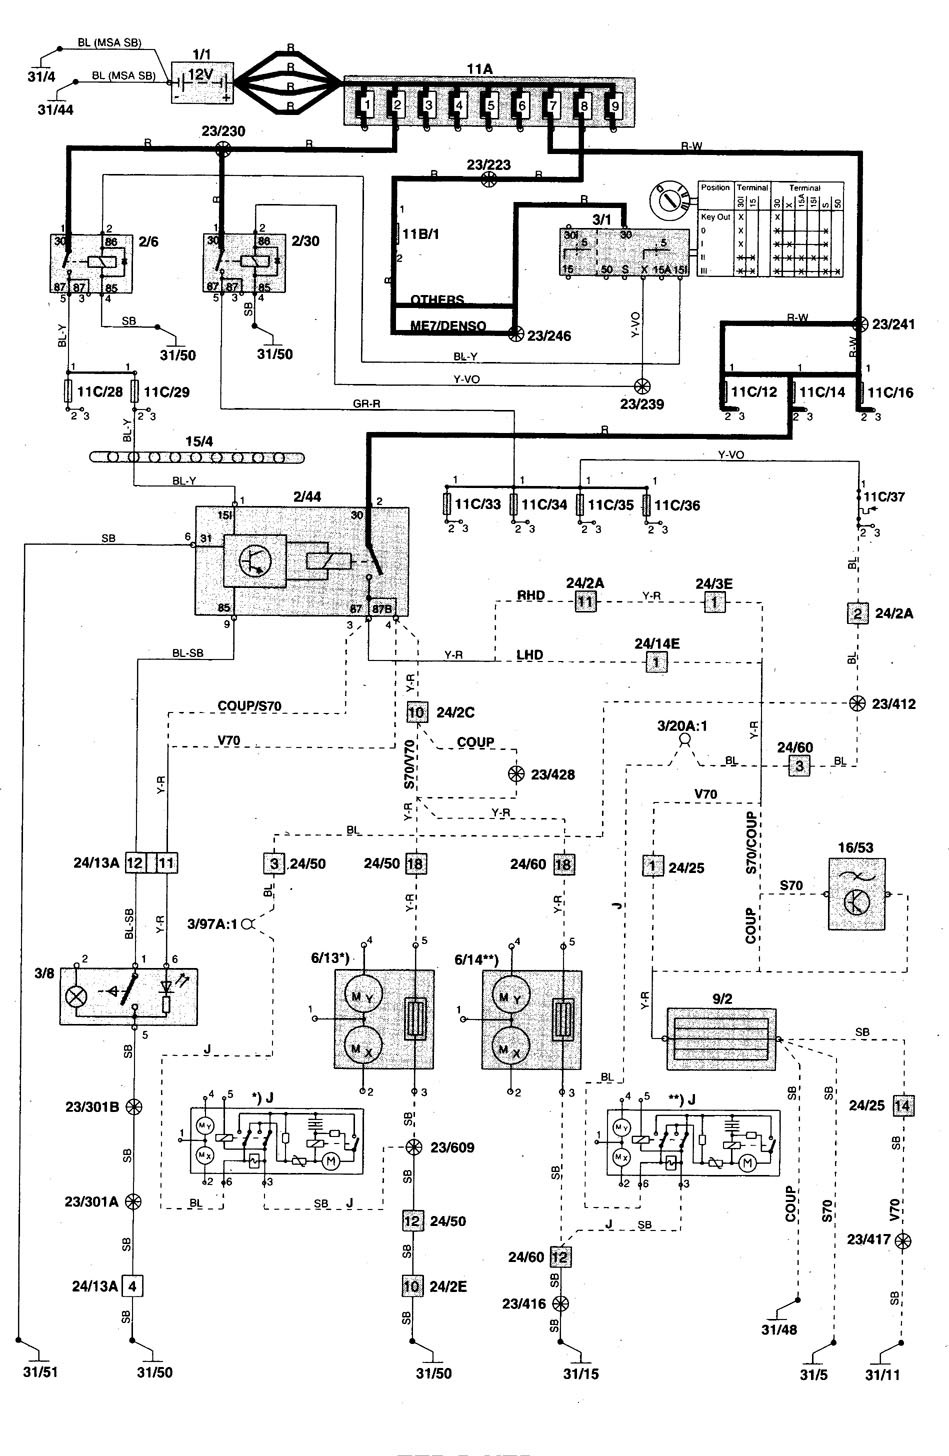 volvo v70 1998 1999 wiring diagrams heated mirror carknowledge rh carknowledge info wiring diagram volvo v70 2001 wiring diagram volvo v70 2004